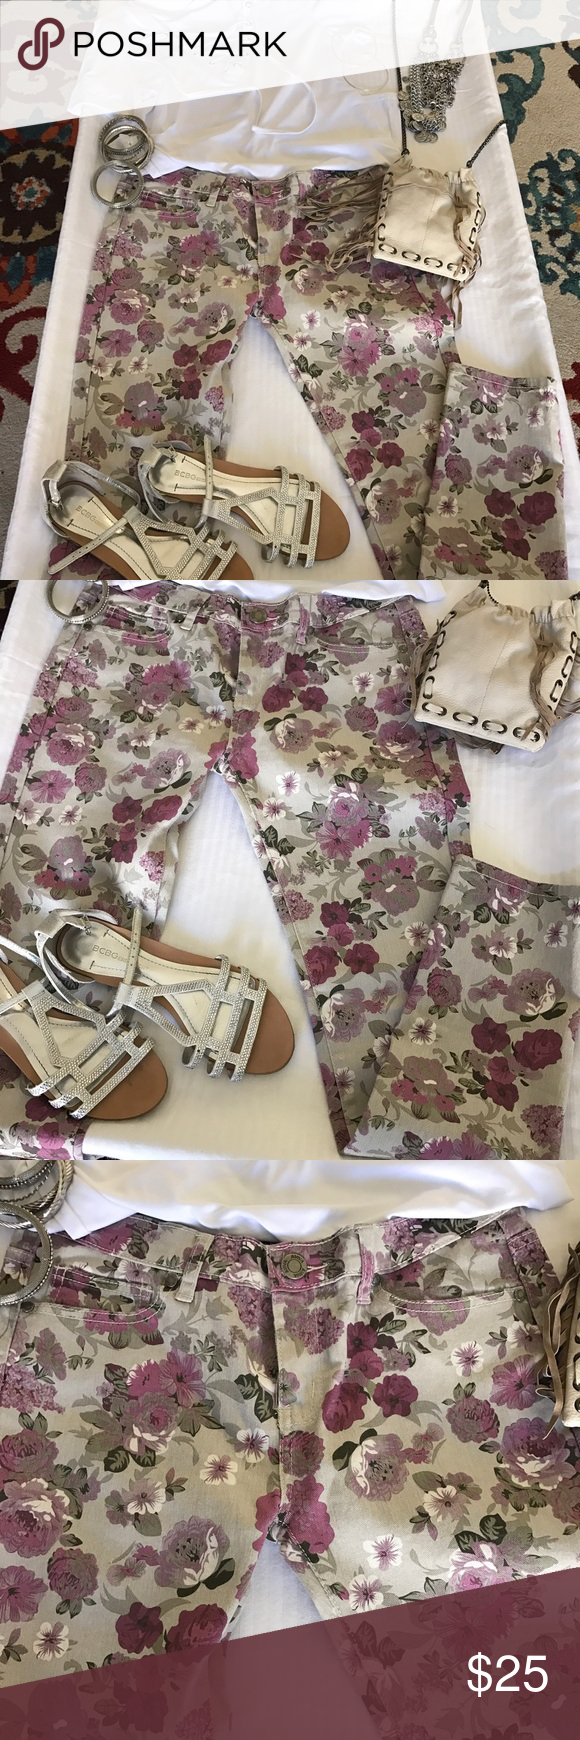 🌸🌺Skinny stretch floral pants 😎 🌸 Super cute floral skinny pants.... a great pair for spring. Beautiful unique color floral pattern. 💖❤️🌸 like new. Used only once . Aviva Pants Skinny